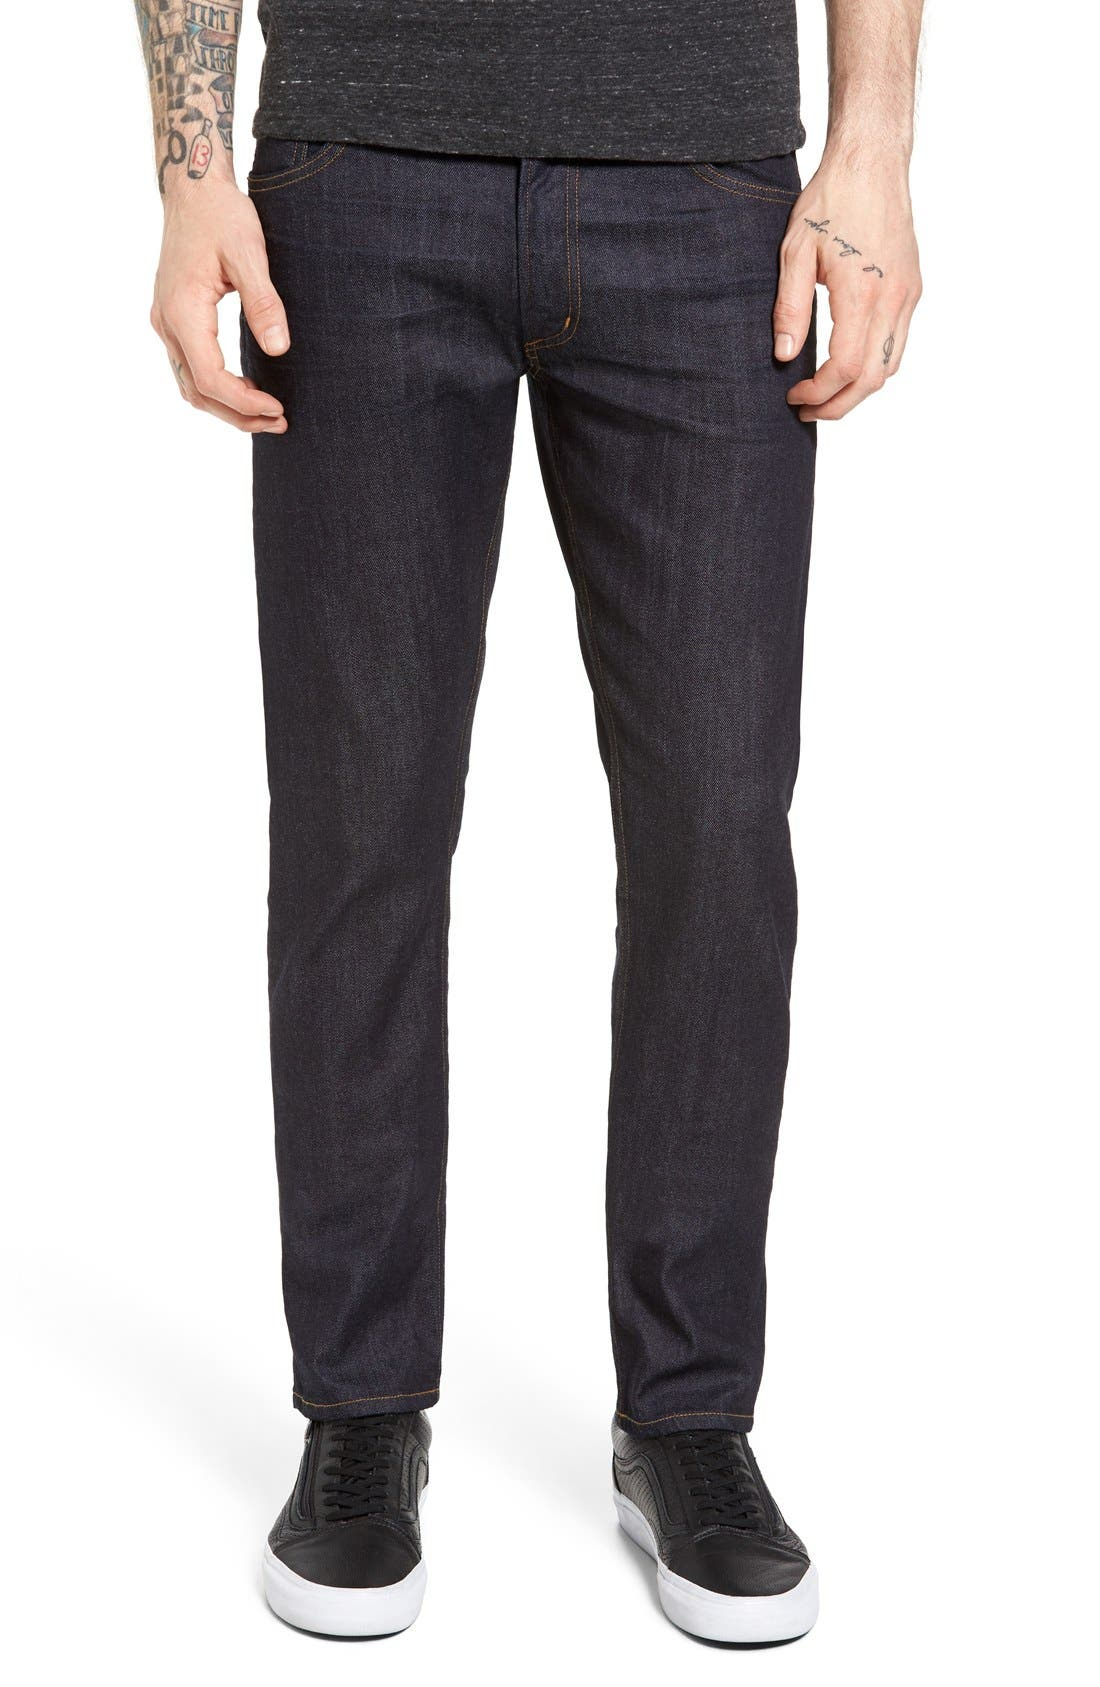 Bowery Slim Fit Jeans,                             Alternate thumbnail 12, color,                             432